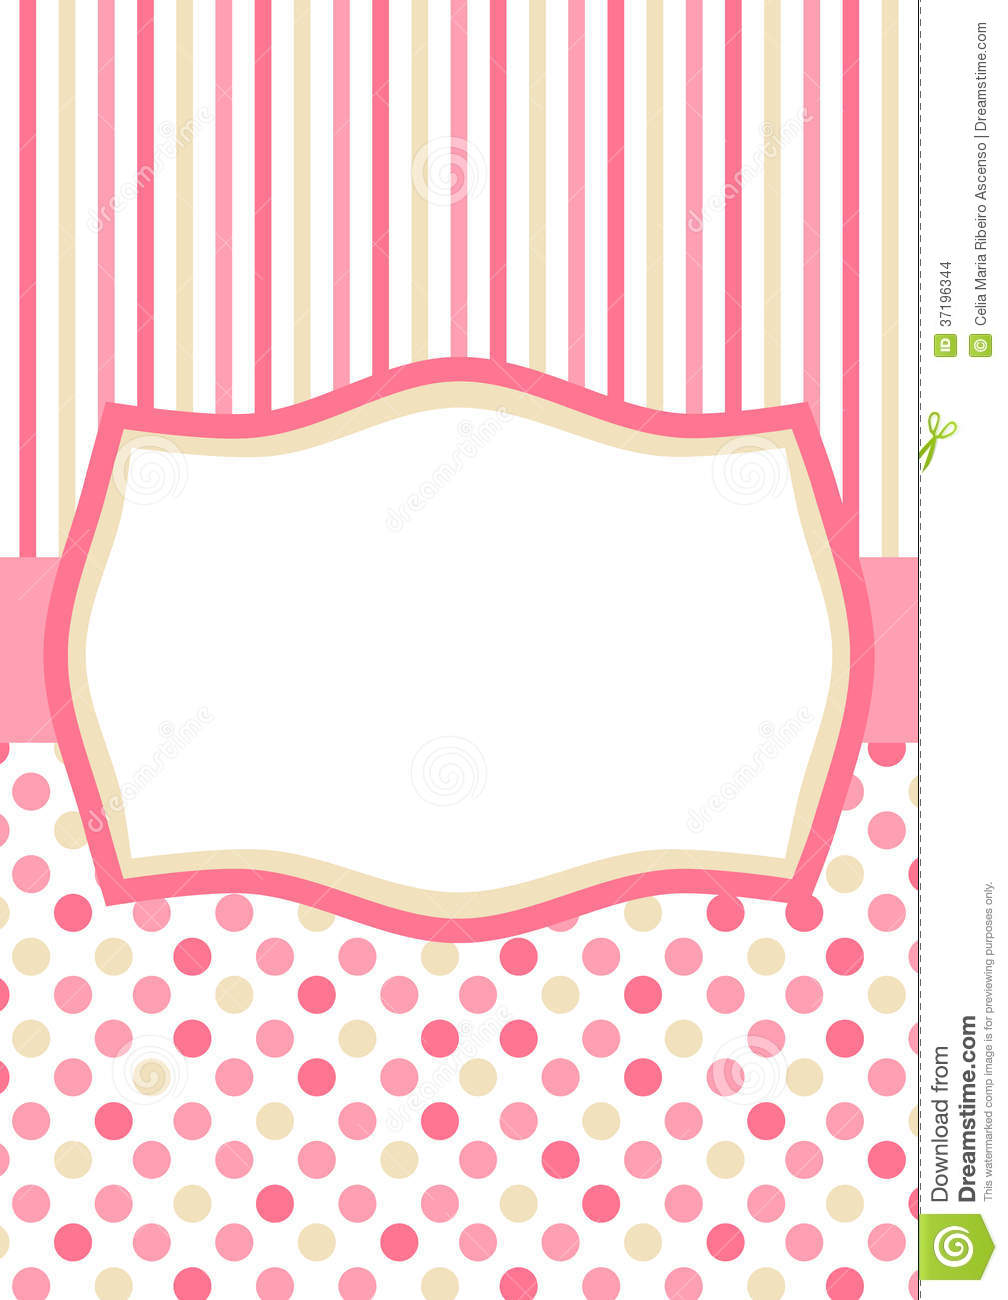 Invitation Card With Pink Polka Dots And Stripes Stock